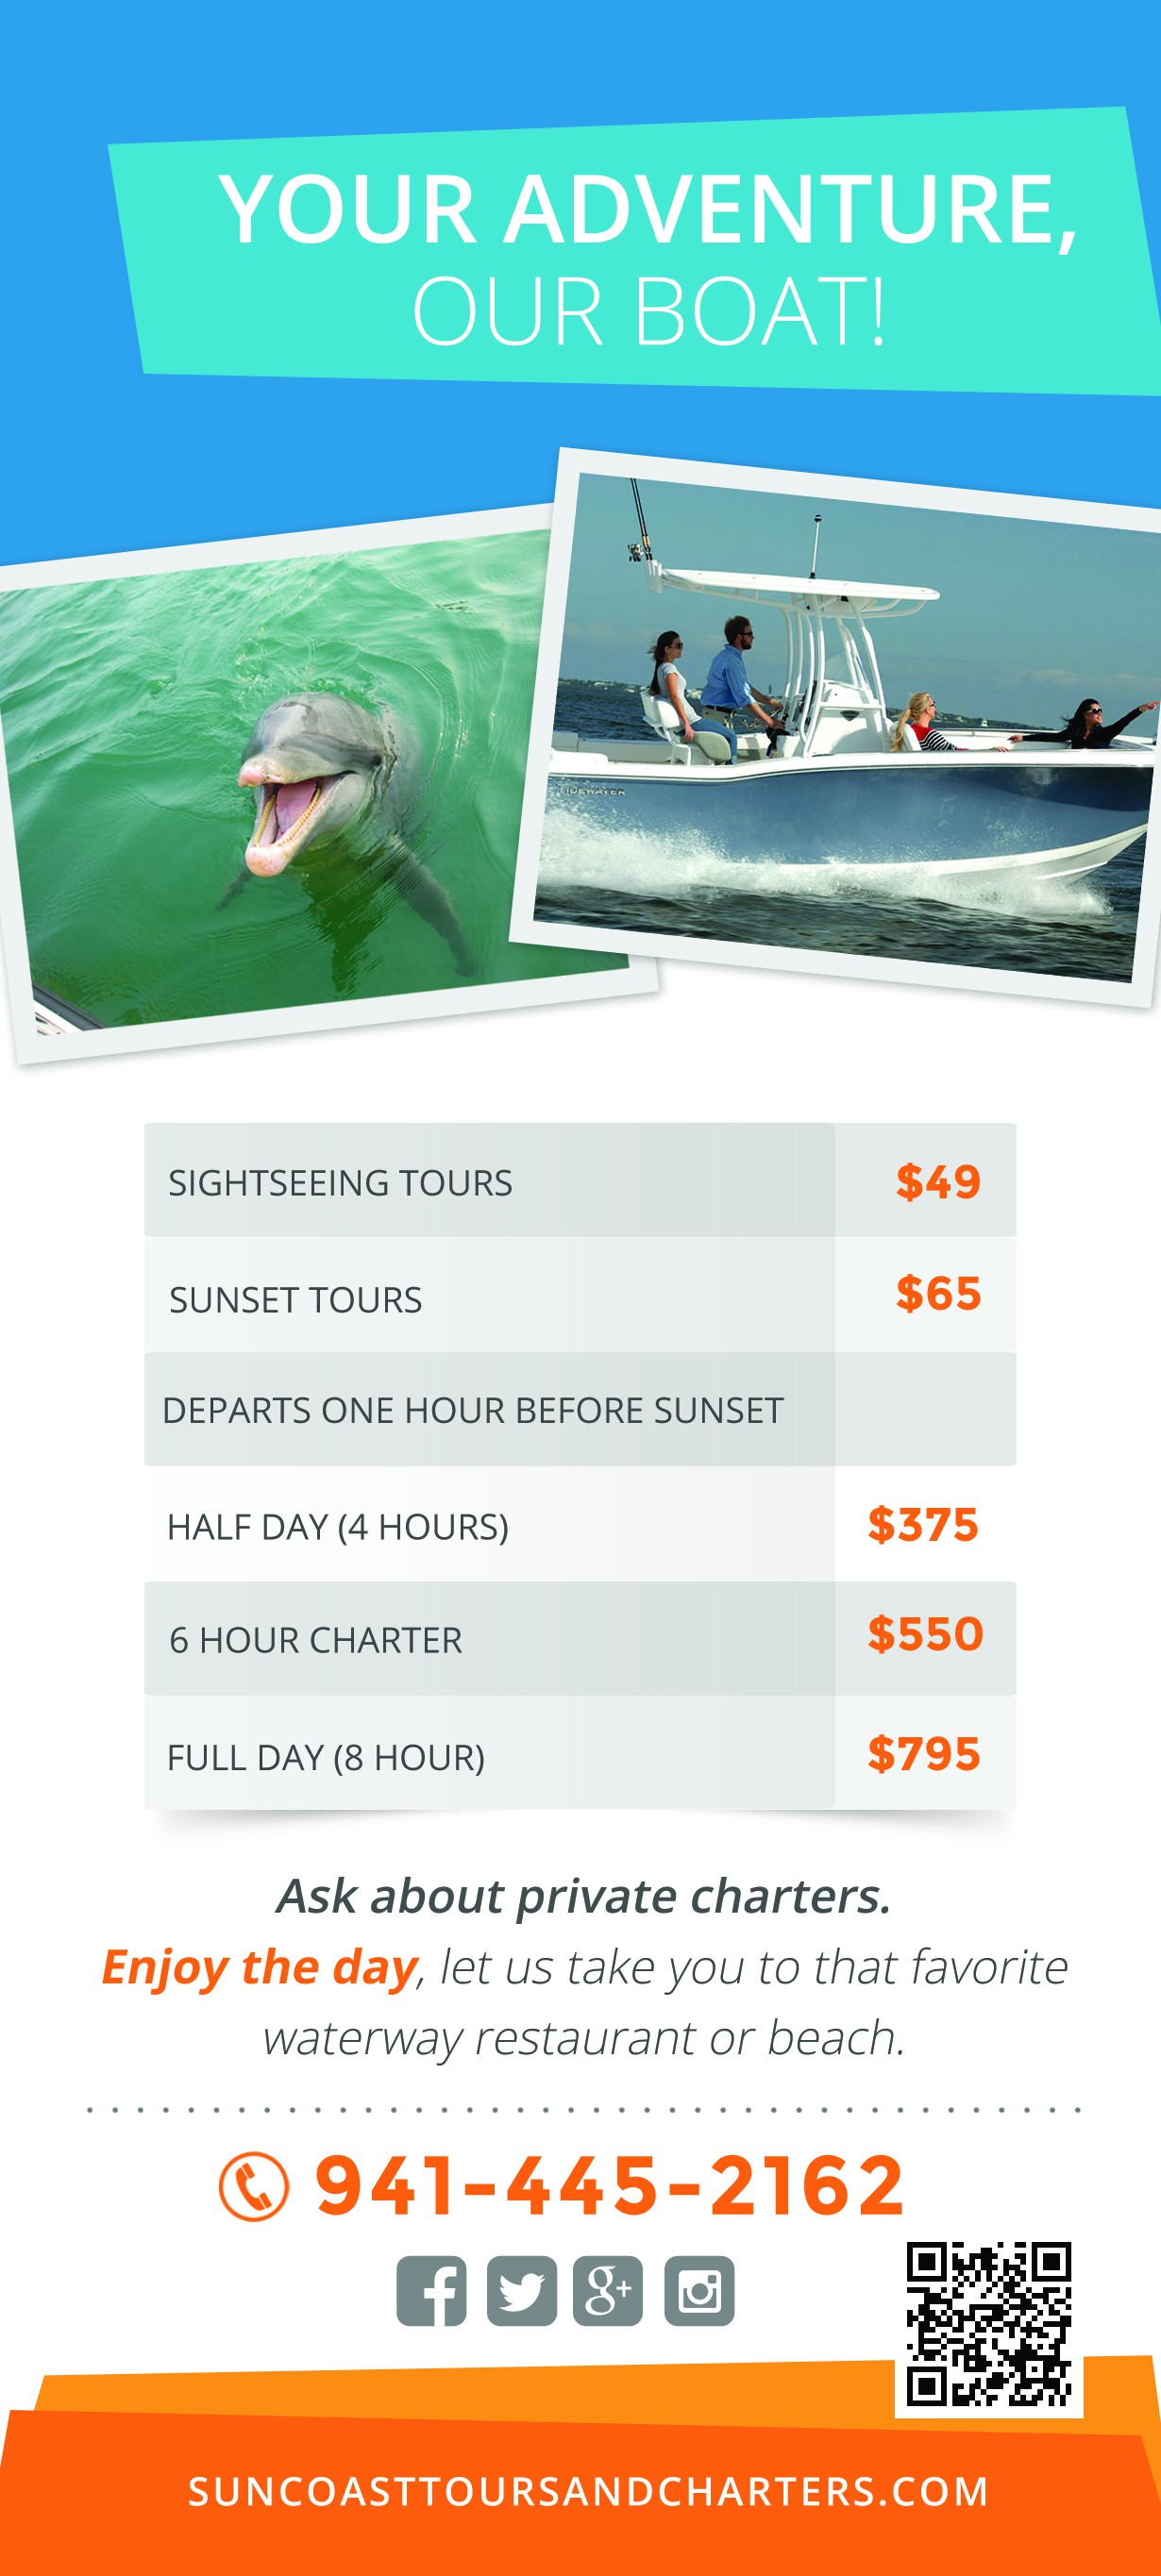 Suncoast Adventure Tours and Charters